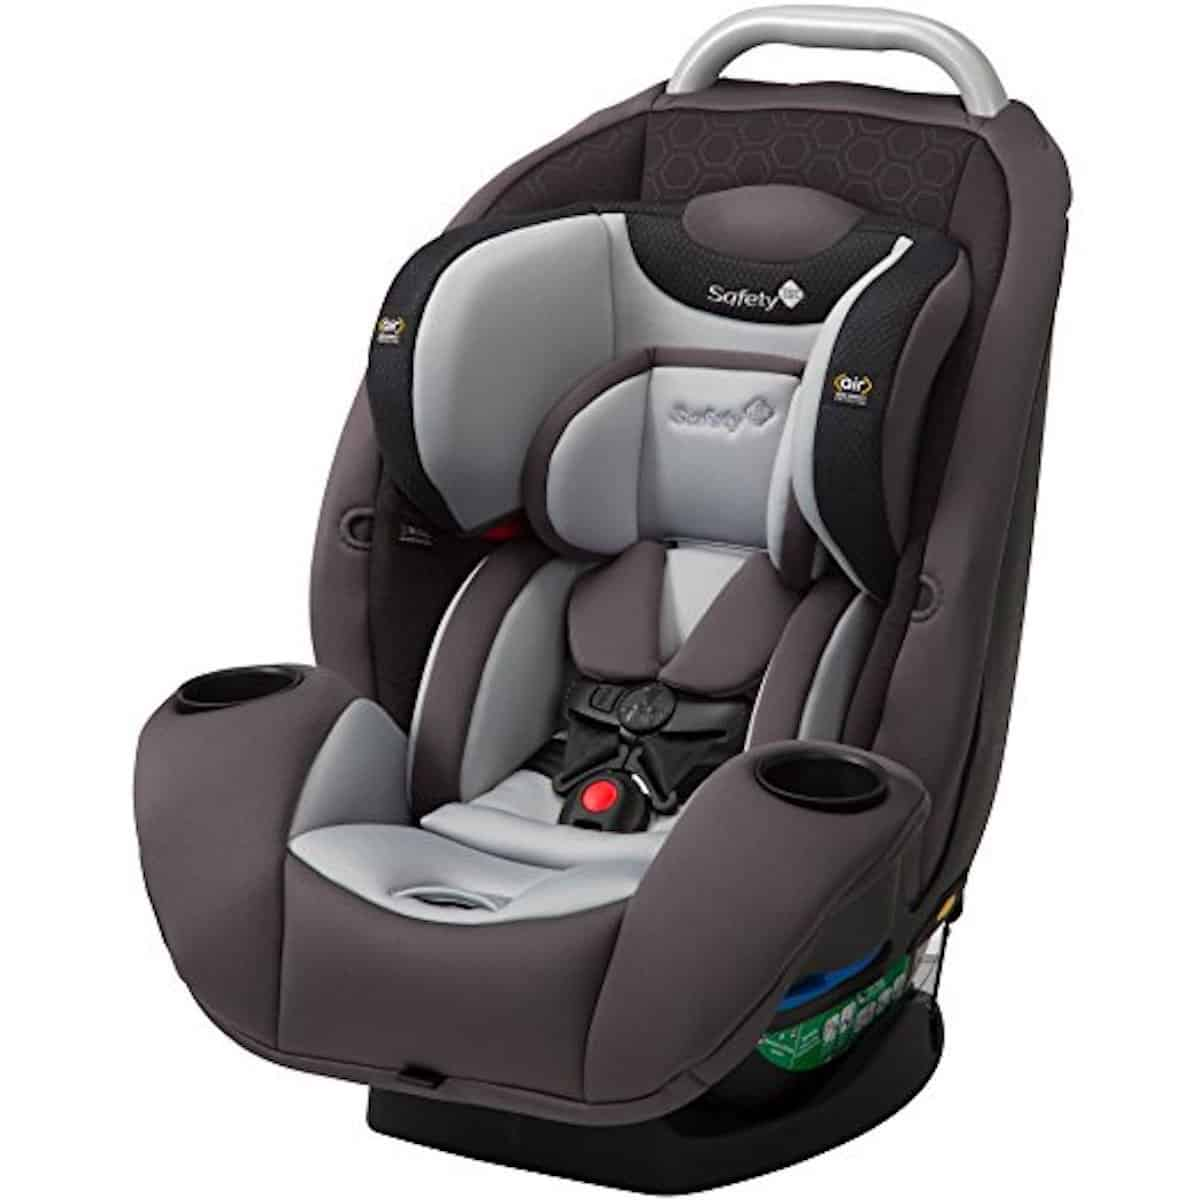 13 Best Car Seats For Extended Rear Facing » Read Now